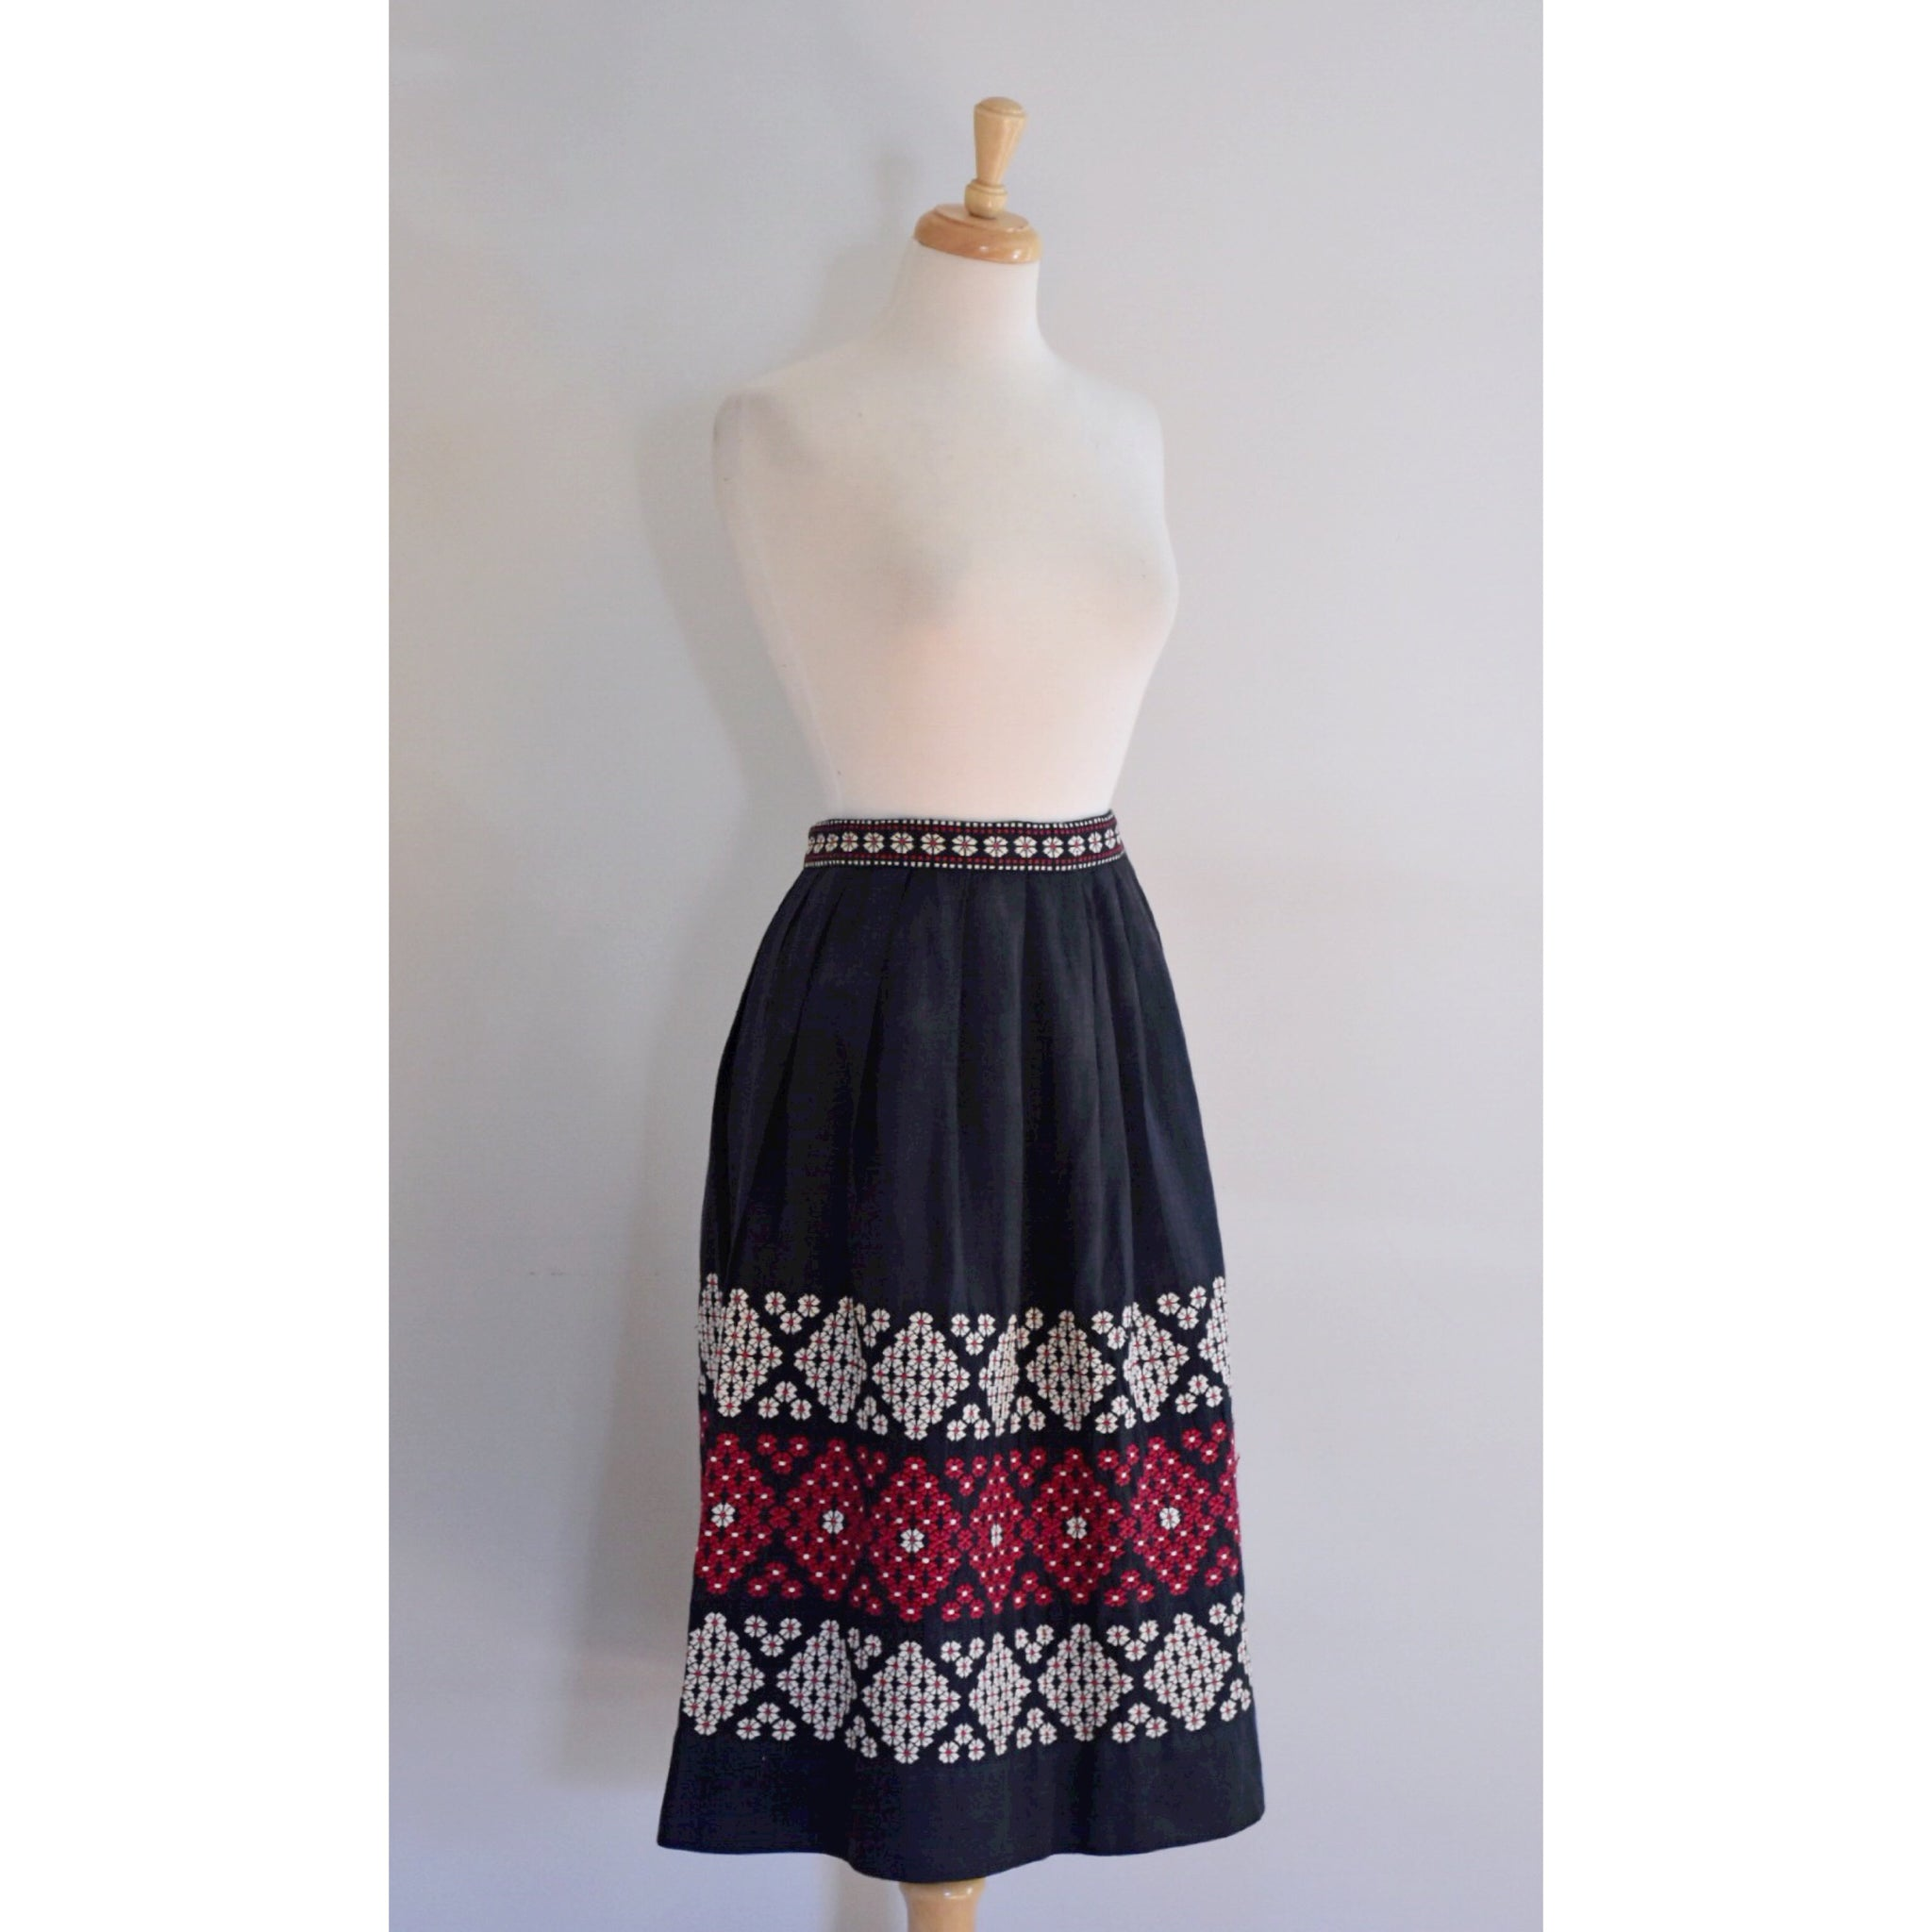 50s Vintage Rockabilly Skirt